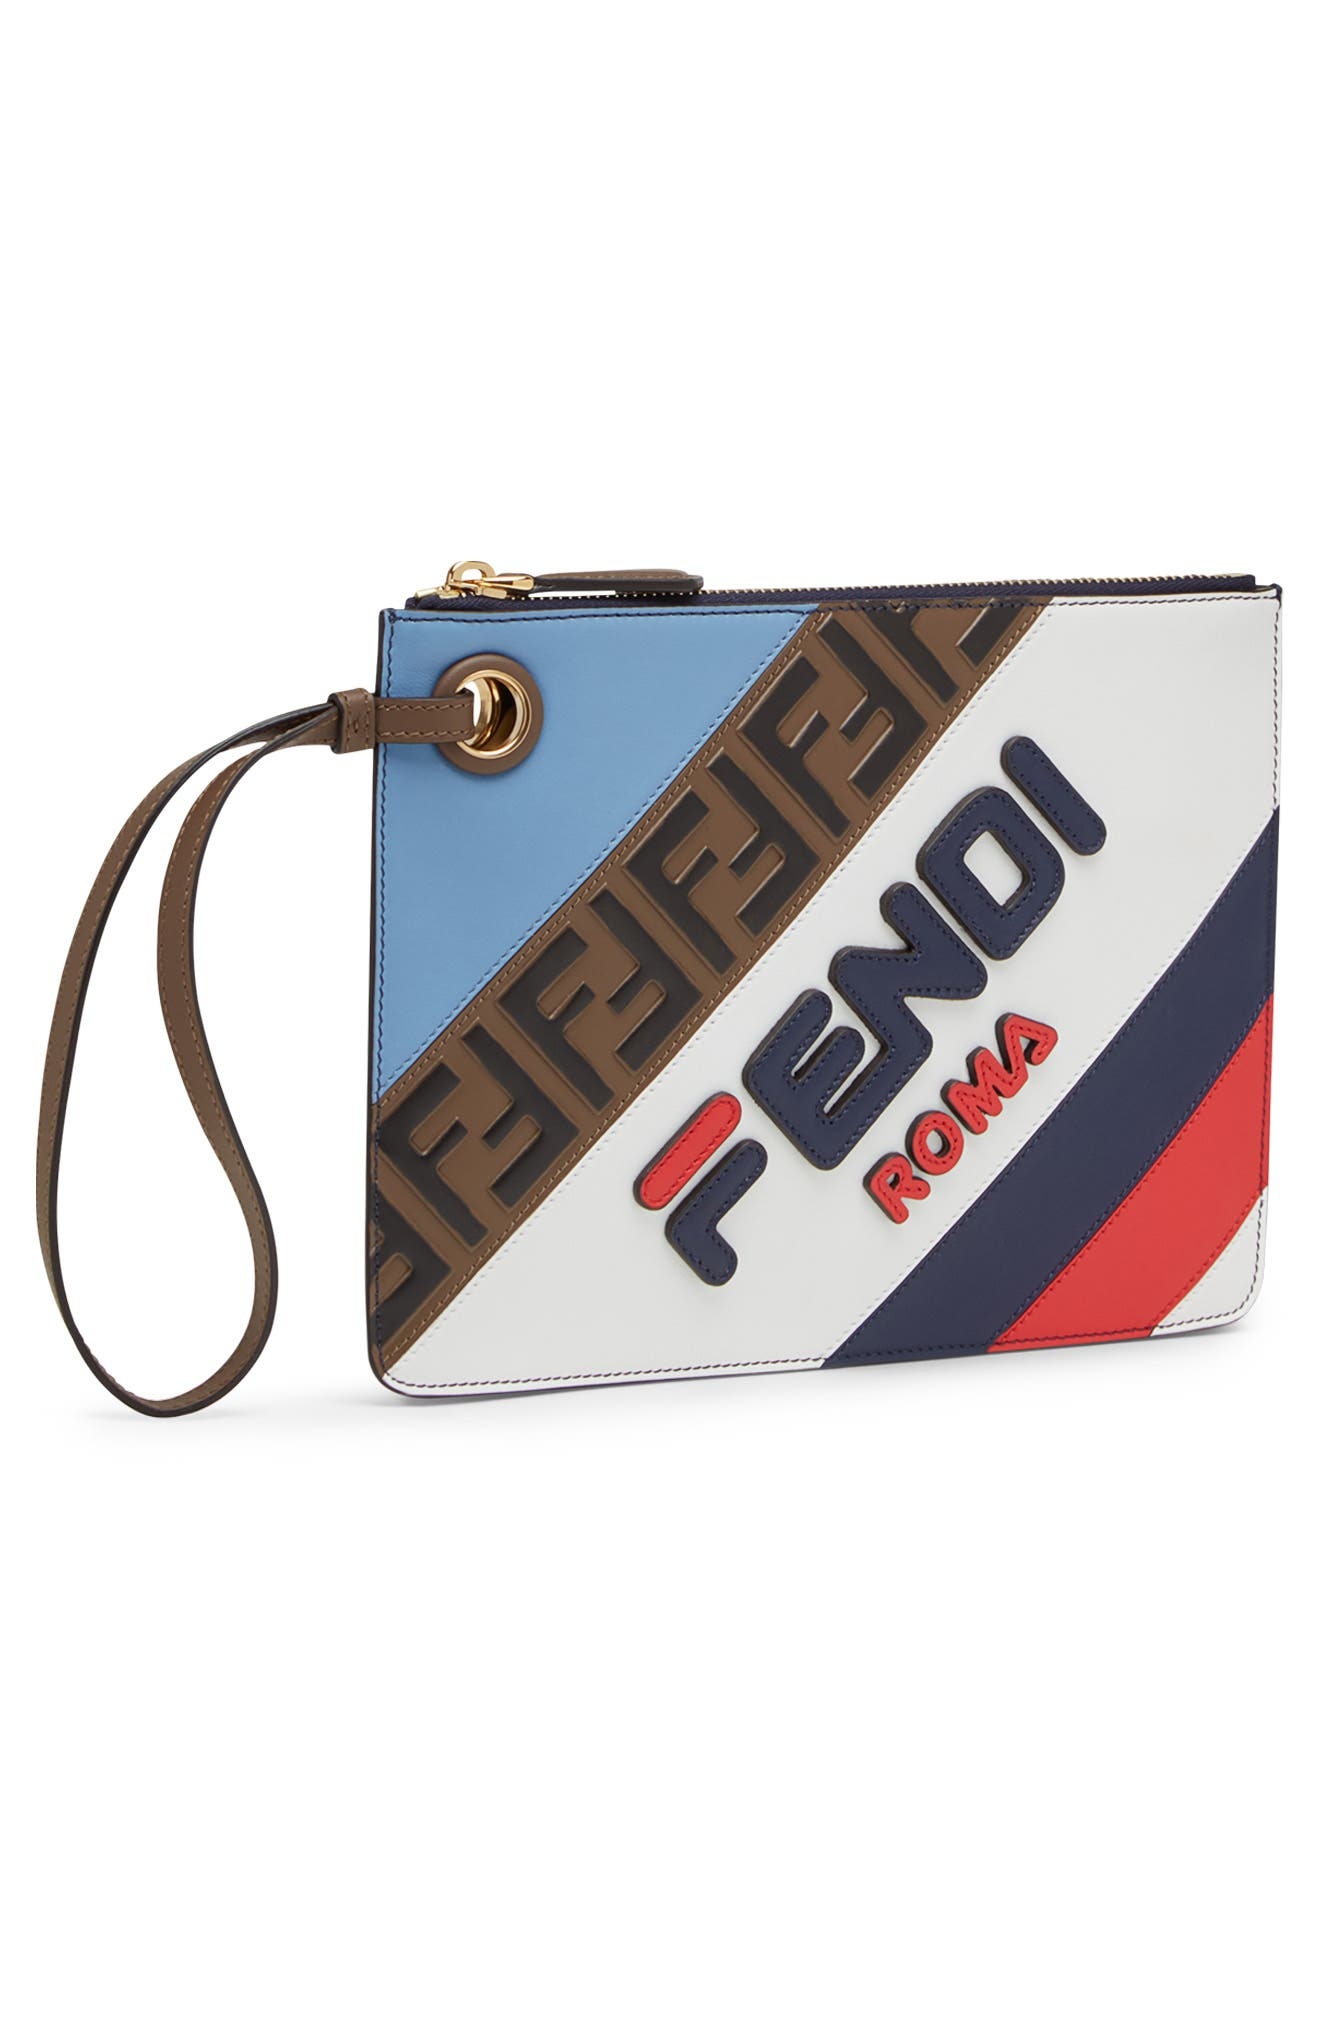 x FILA Small Mania Logo Leather Clutch,                             Alternate thumbnail 4, color,                             NEBUL/ BERRY MULTI